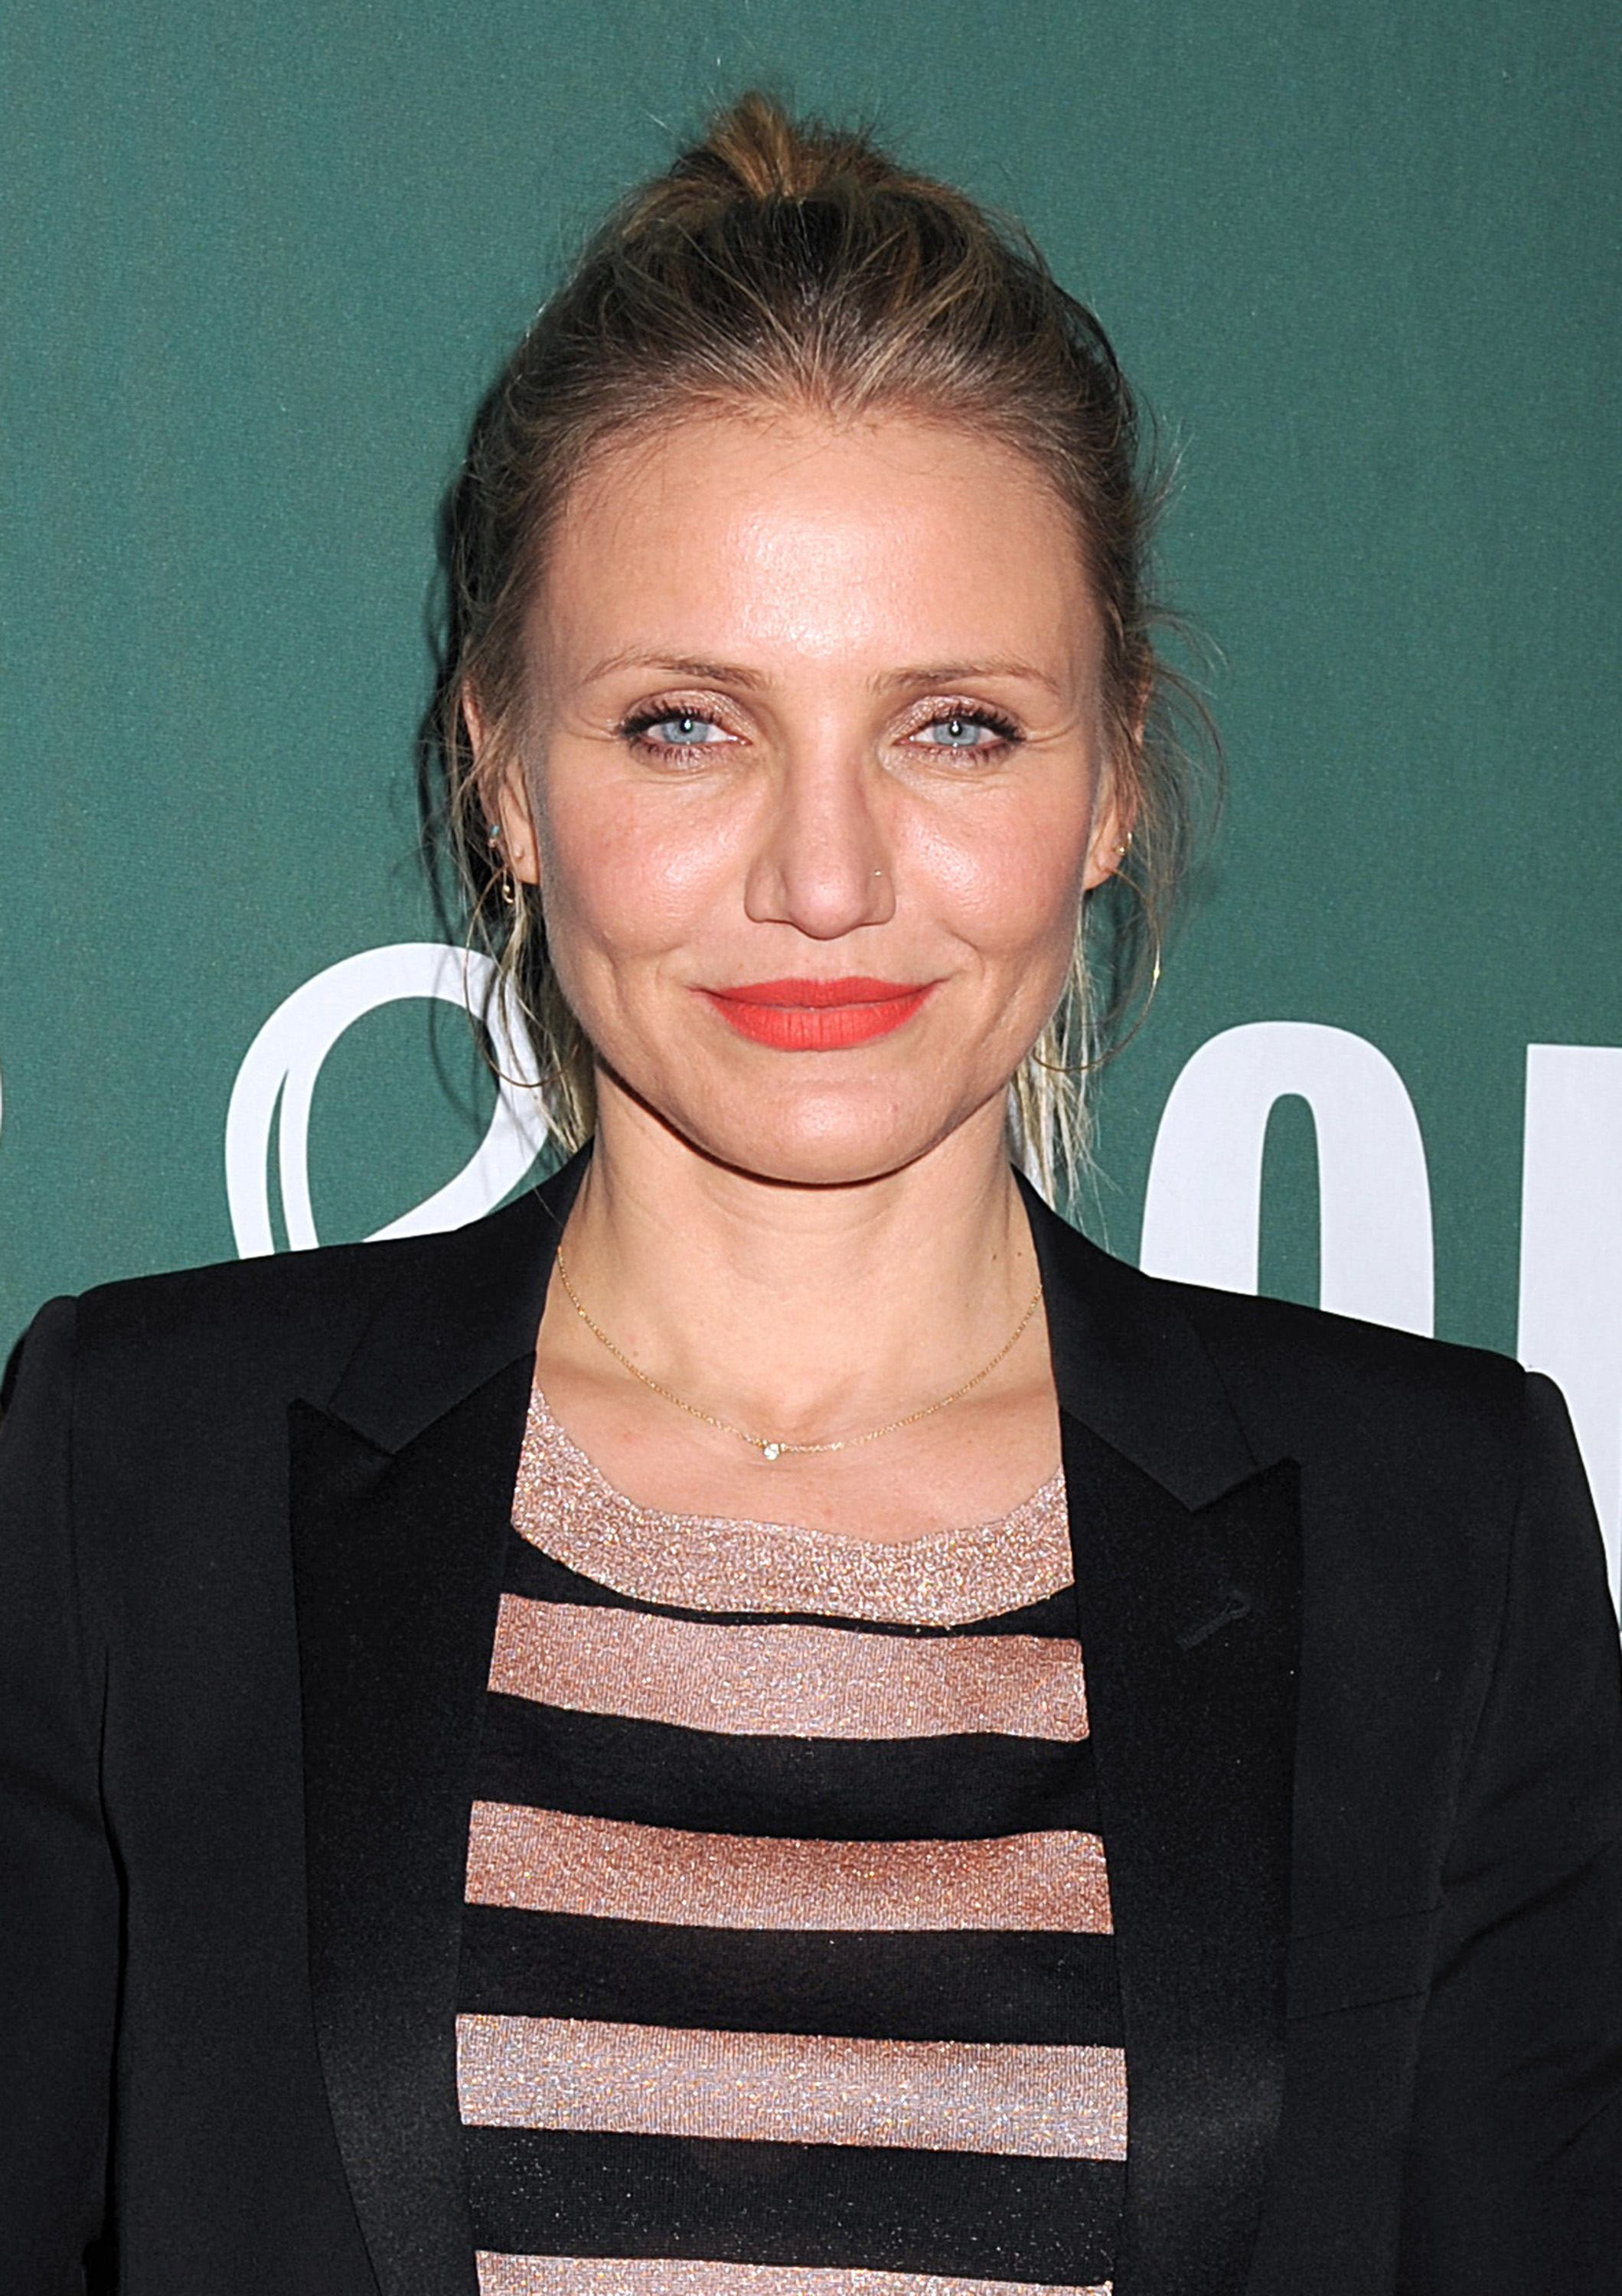 52015571 Actress Cameron Diaz promotes her new book